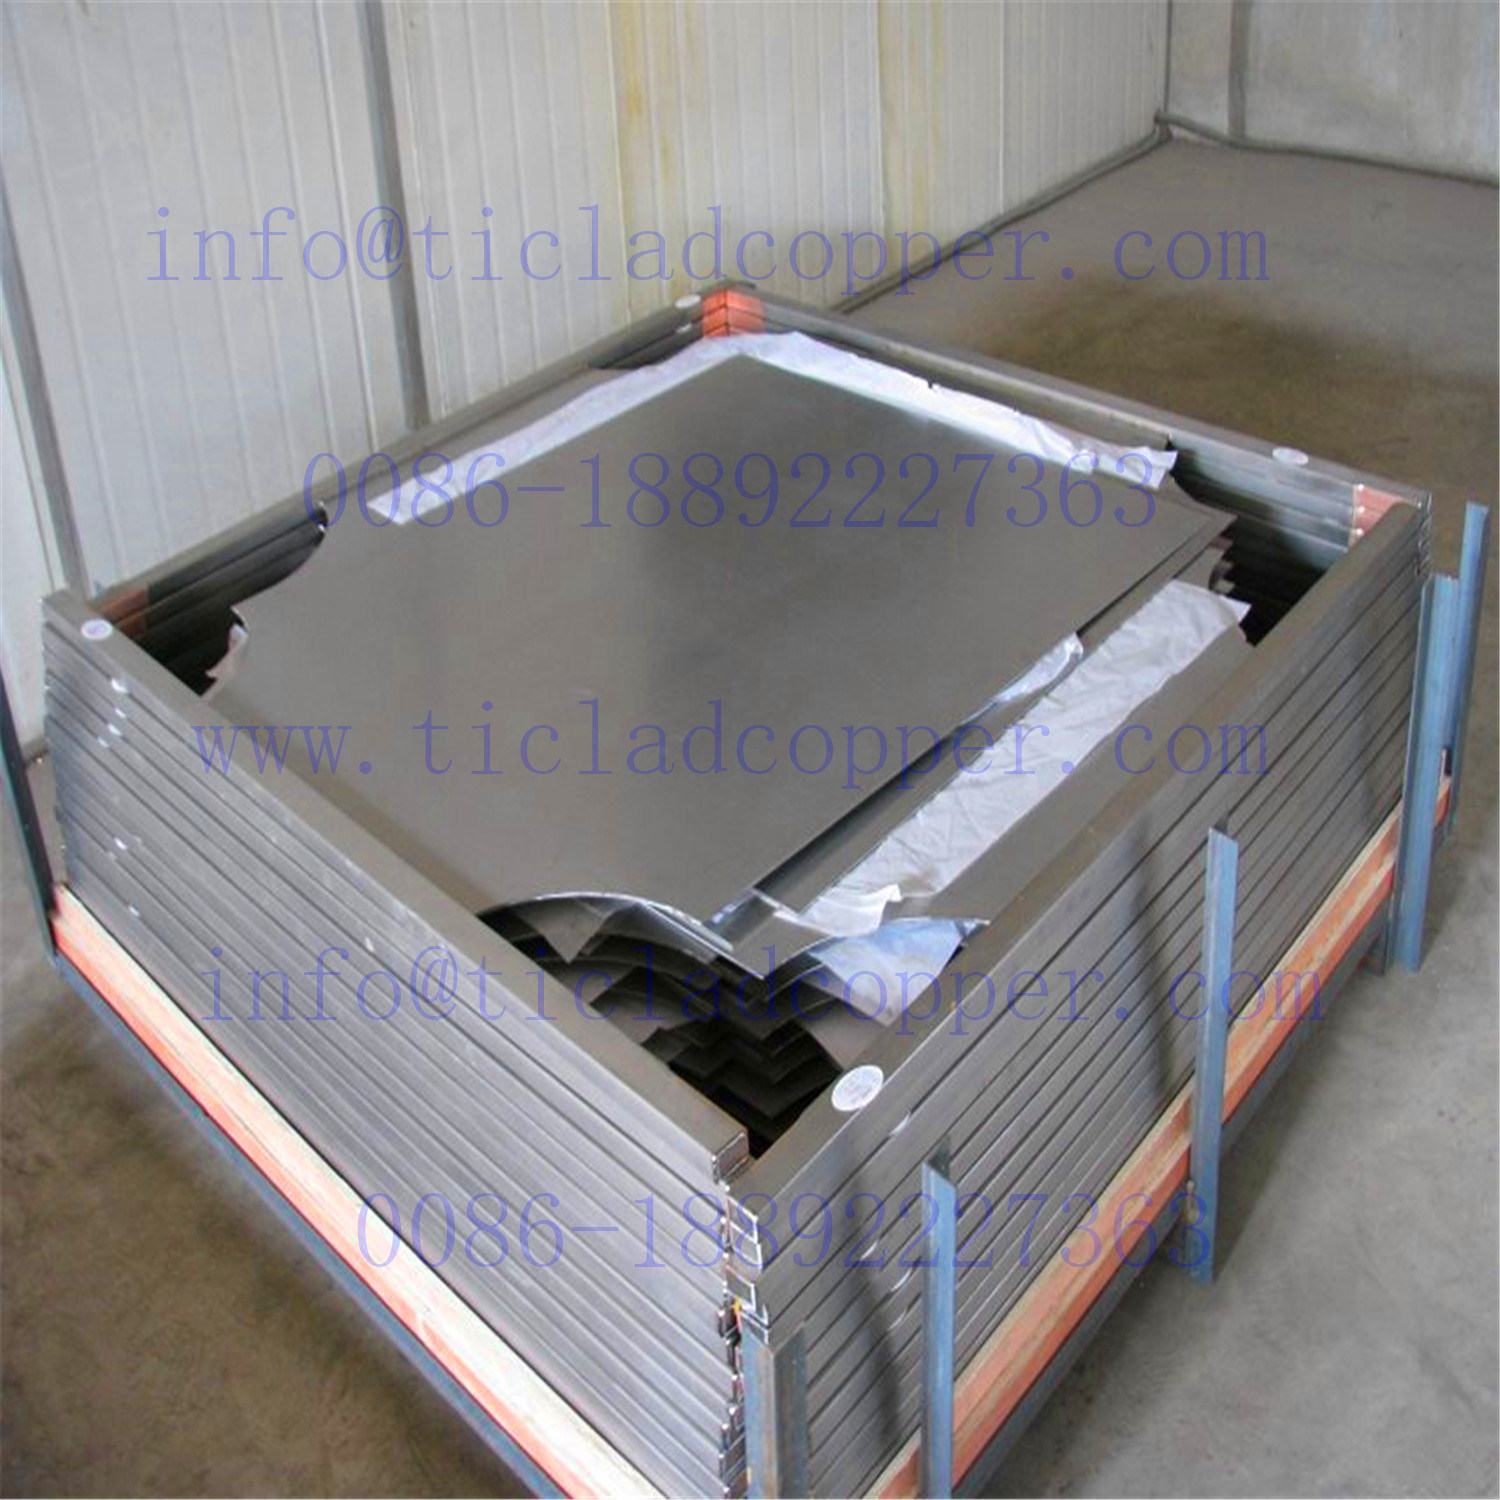 Titanium Clad Copper Cathode Plate for Wet Metallurgy